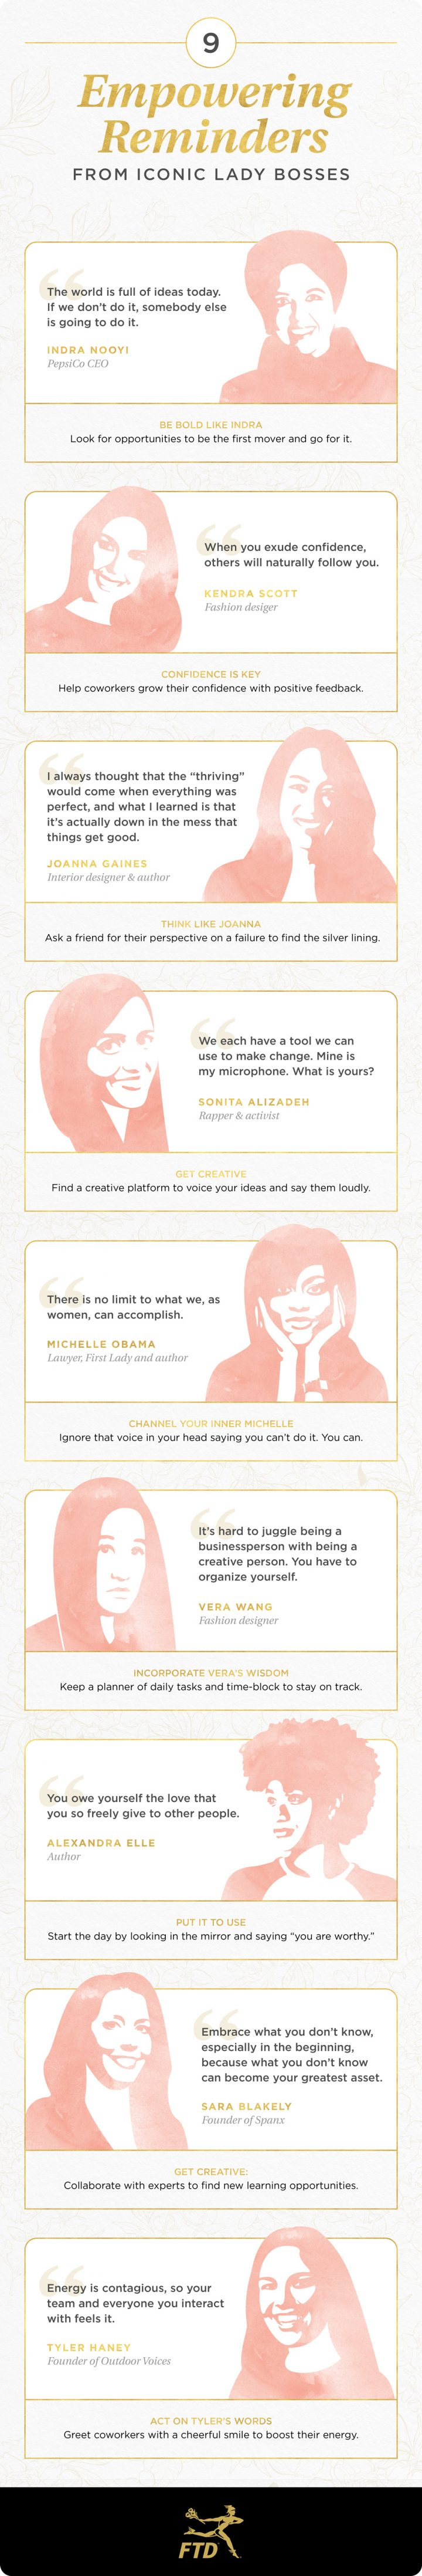 pink and gold quotes from inspirational women.